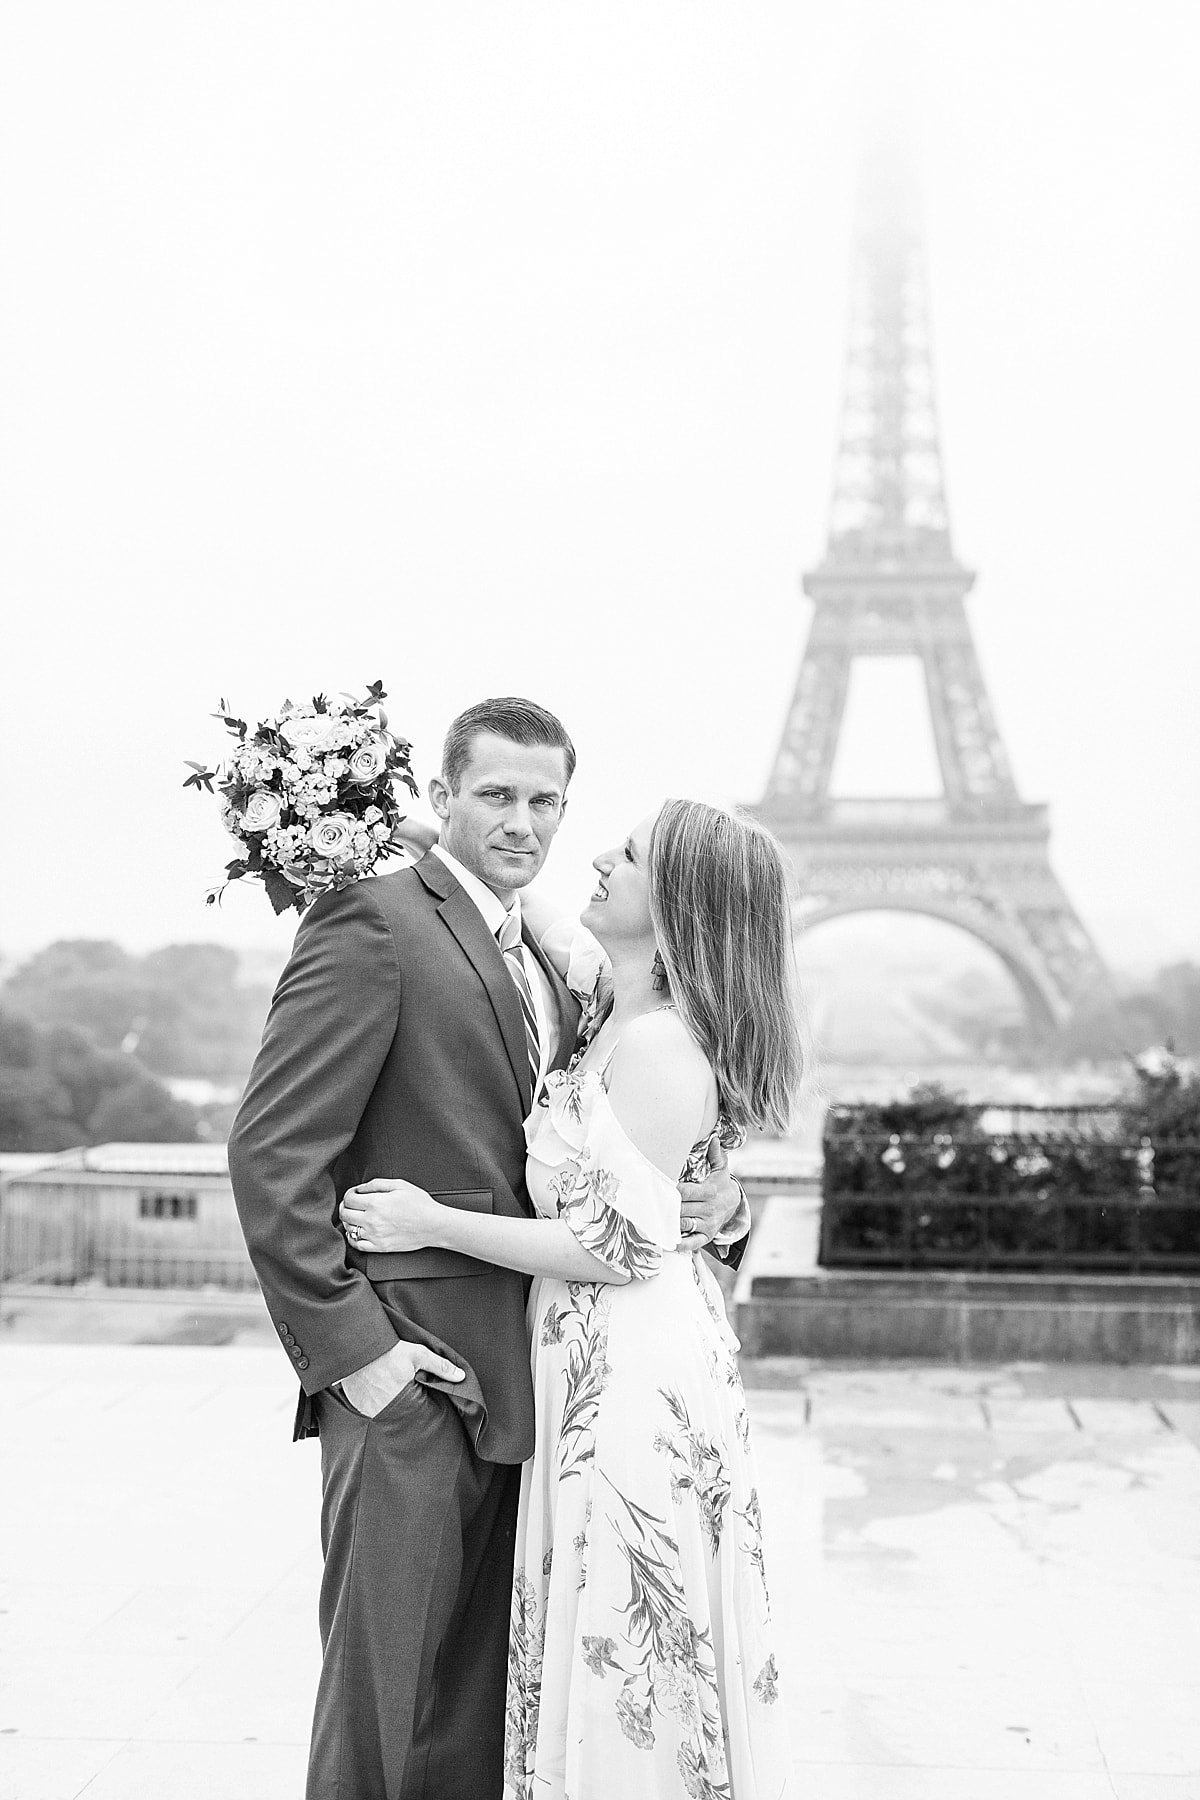 paris-photo-session-anniversary-alicia-yarrish-photography_03